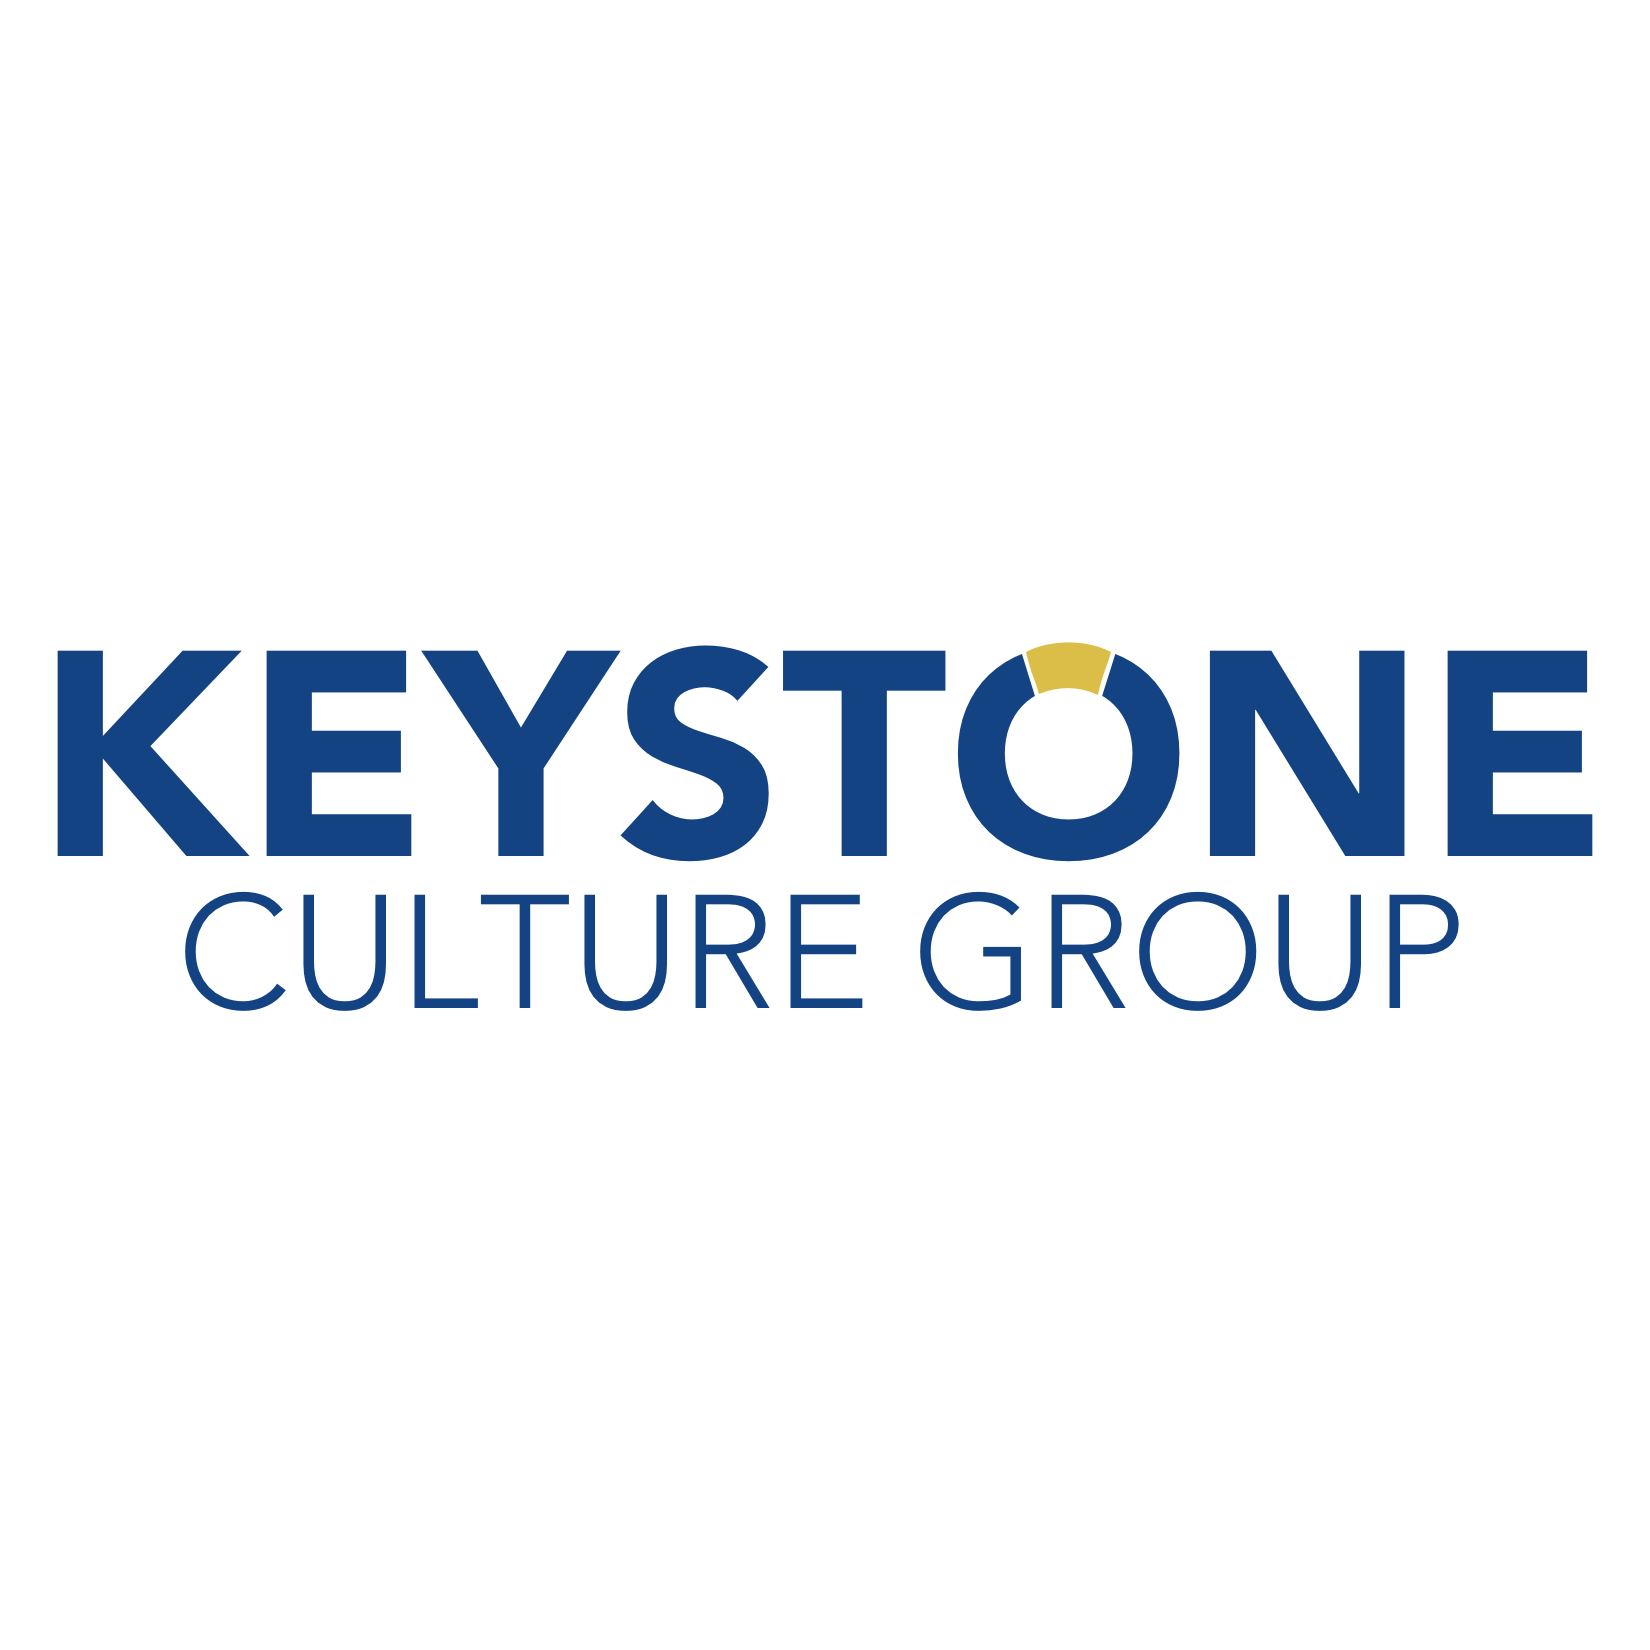 Keystone Culture Group